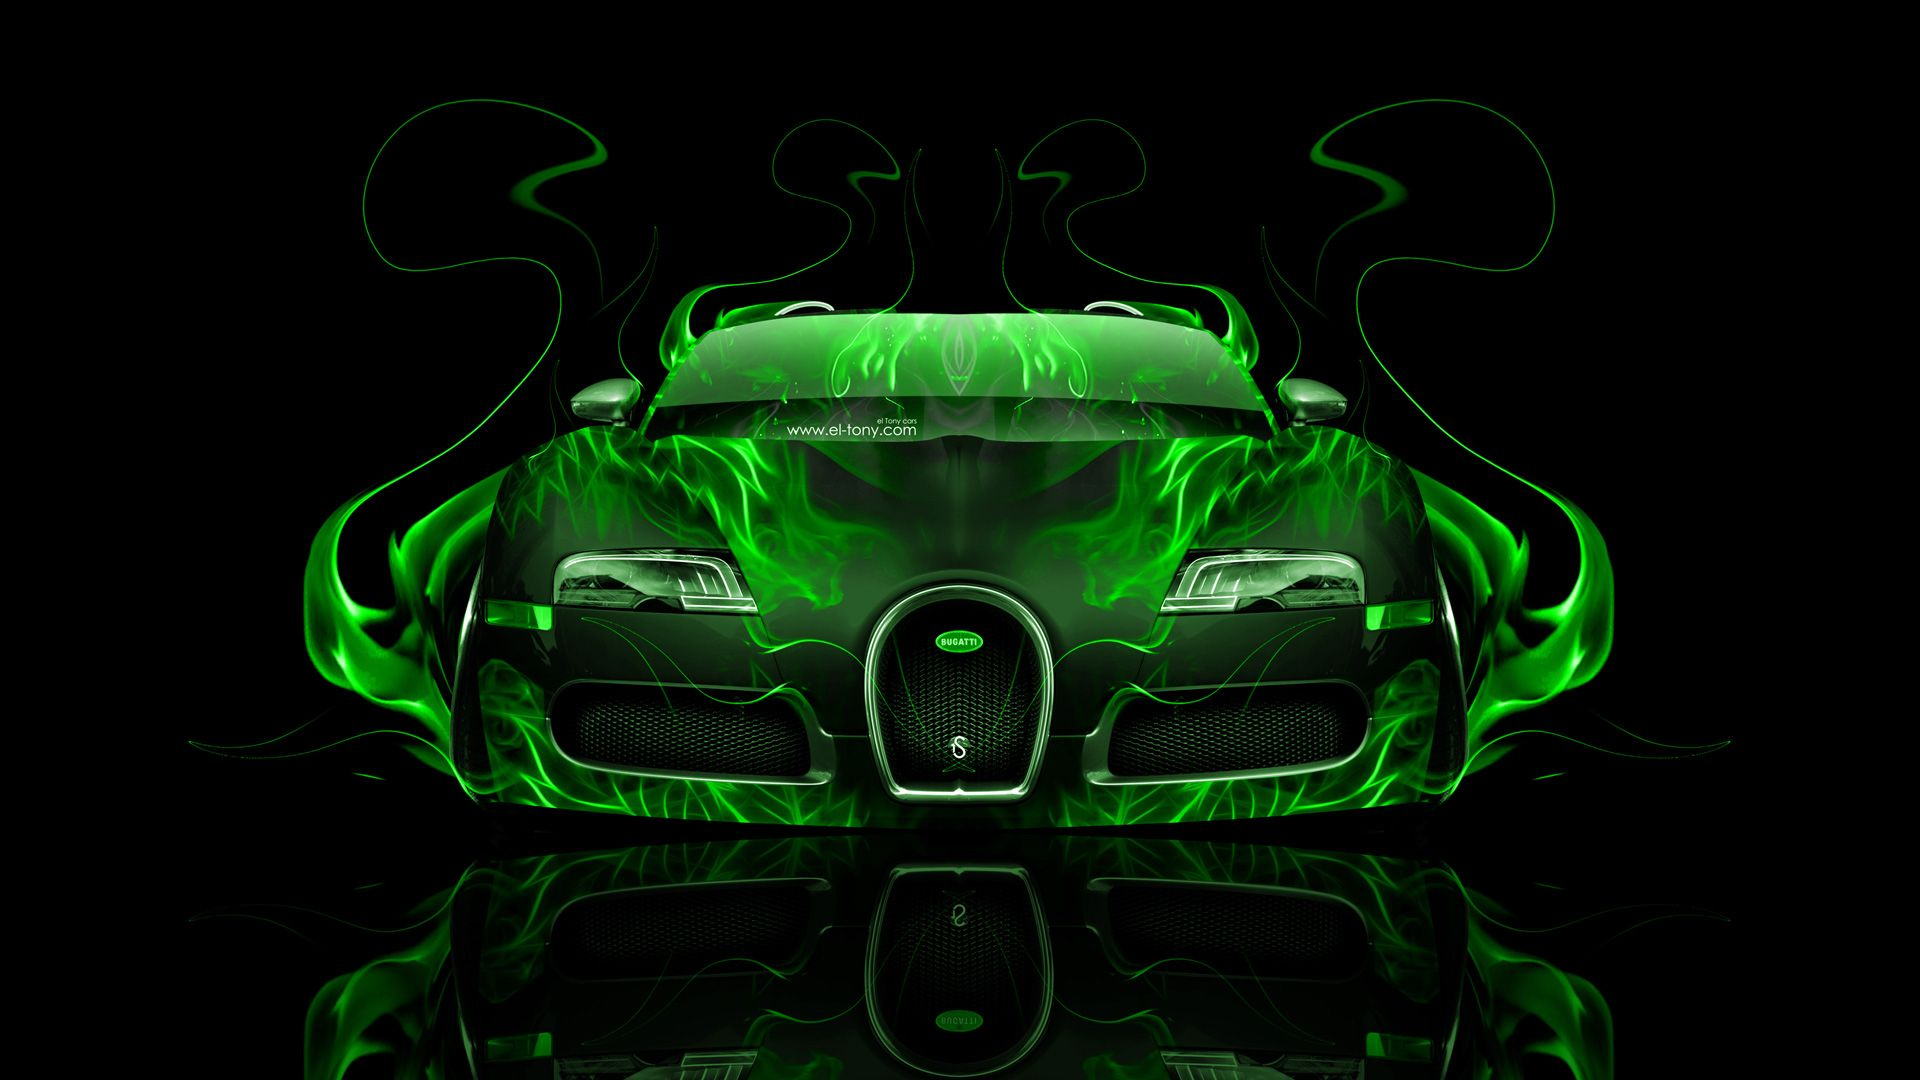 Merveilleux Bugatti Veyron Front Water Car 2014 Green Neon Design By Tony Kokhan Car  Pictures